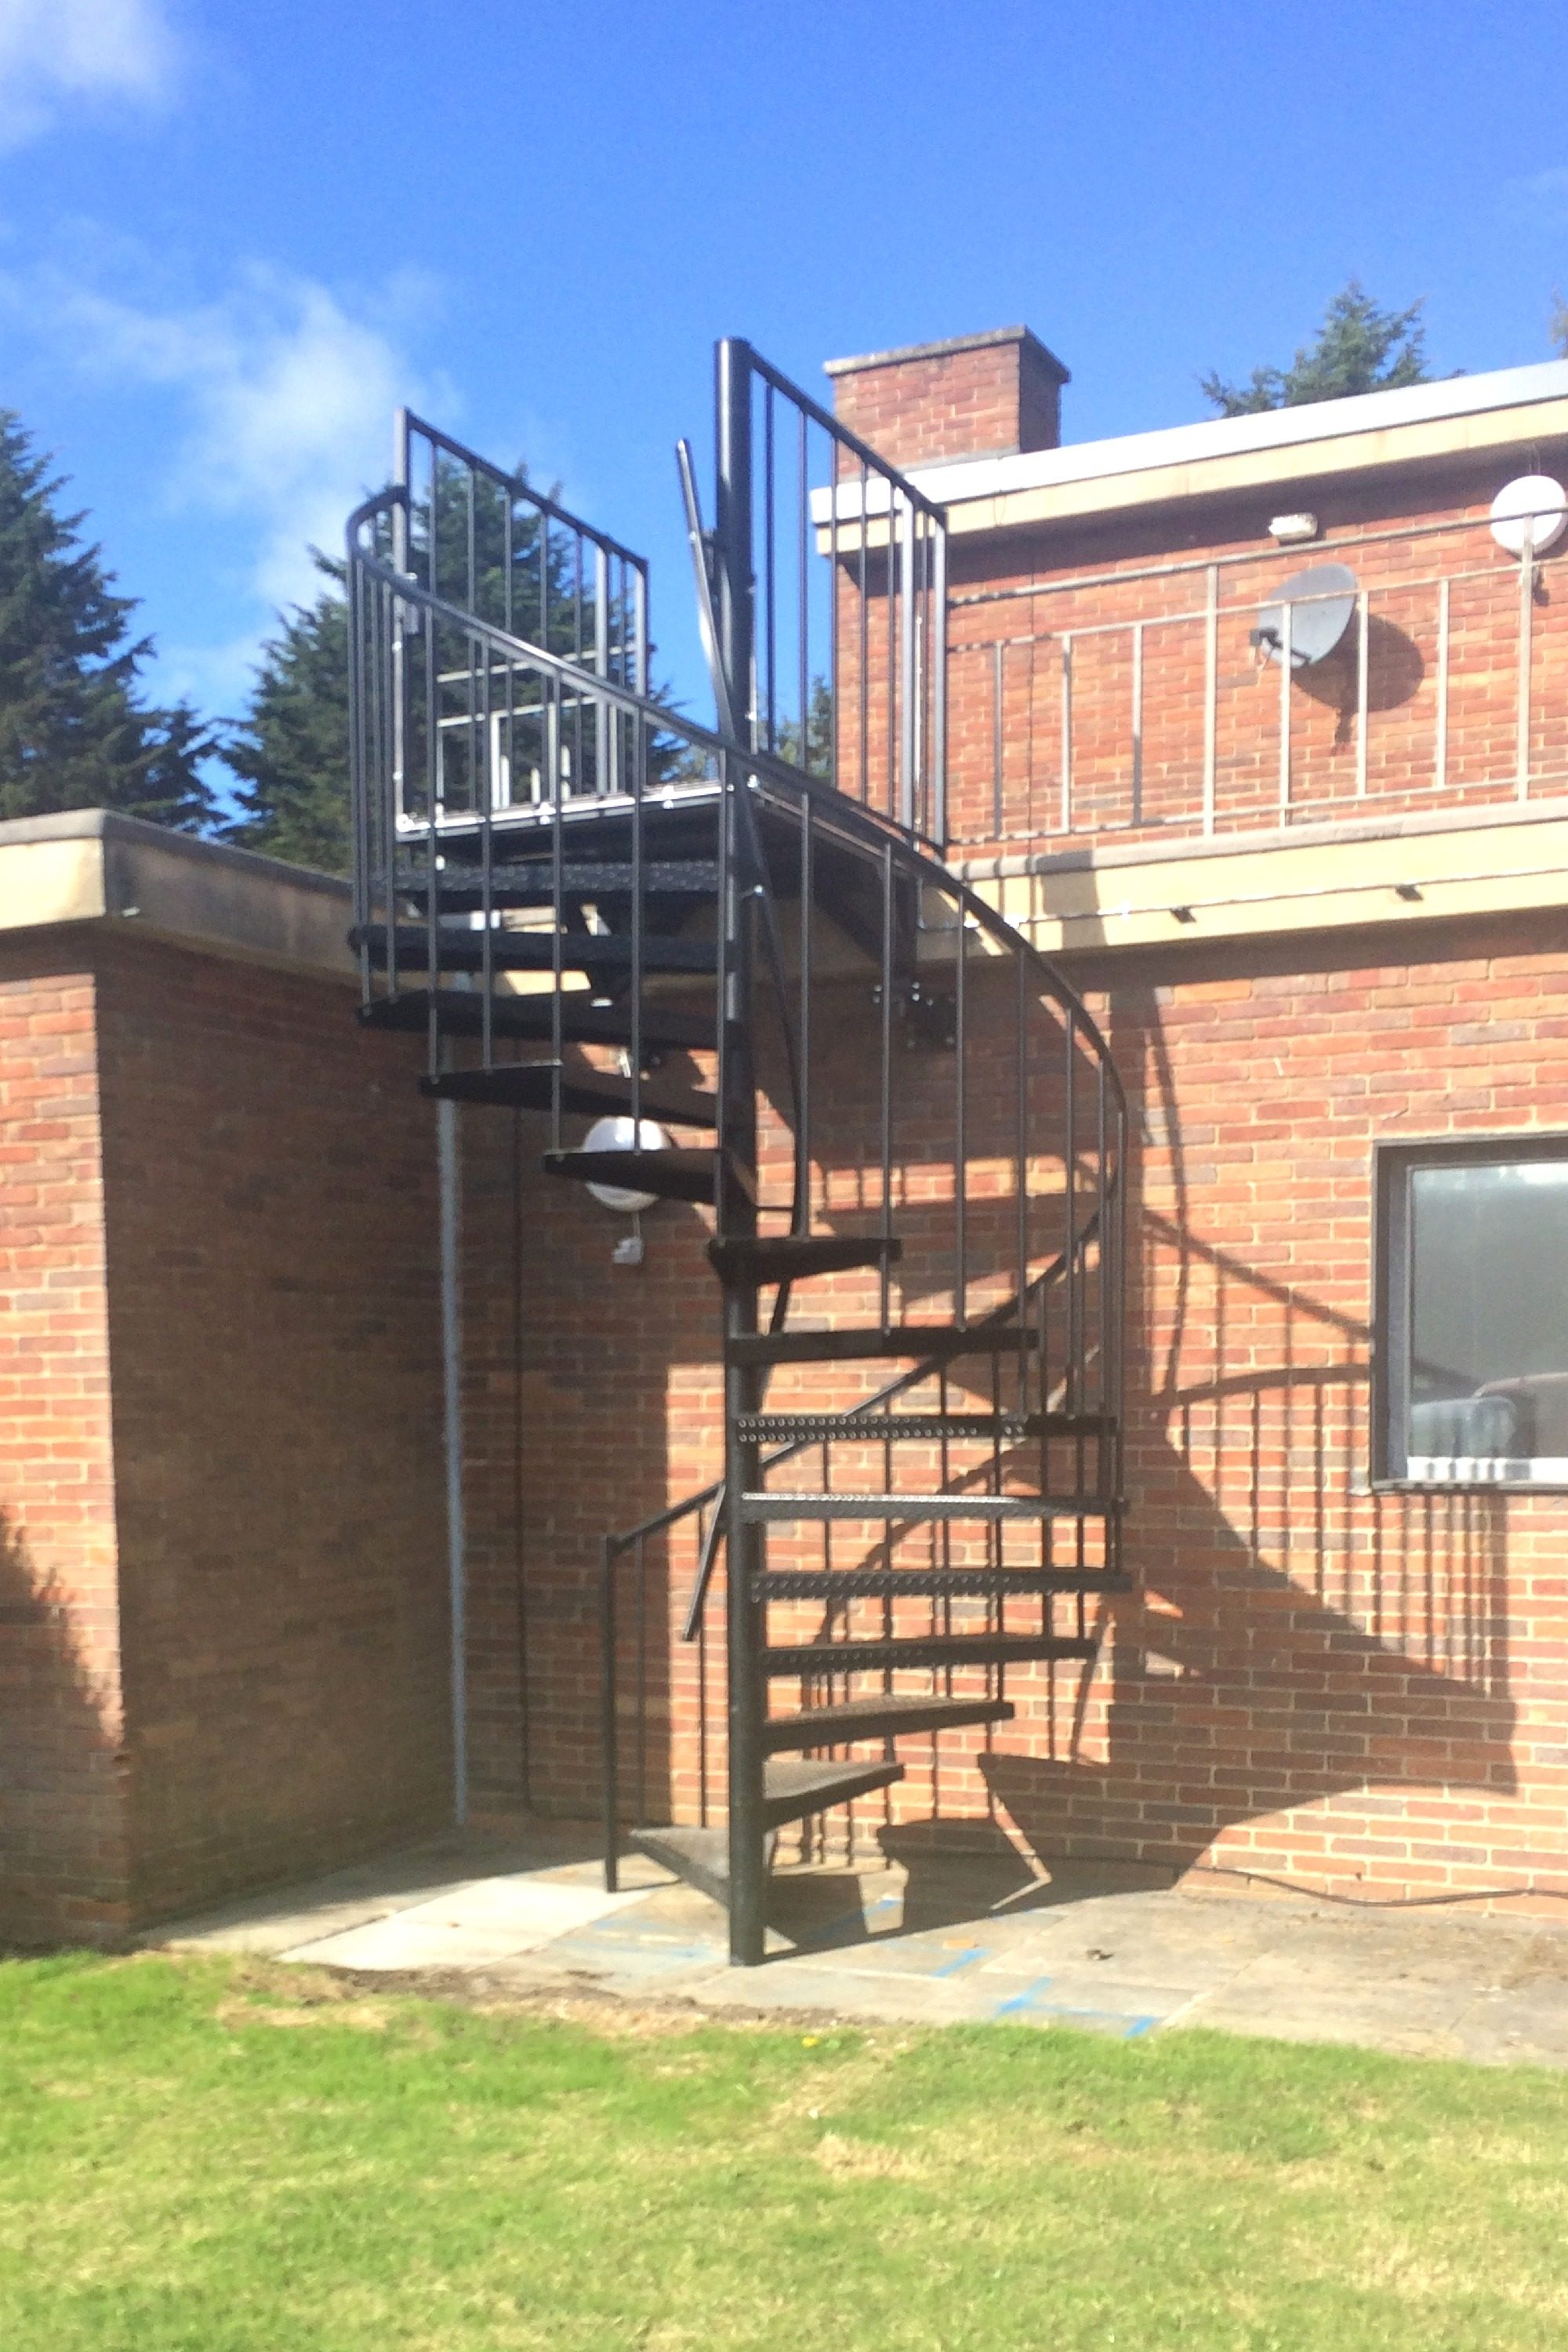 external fire escape stair on school building